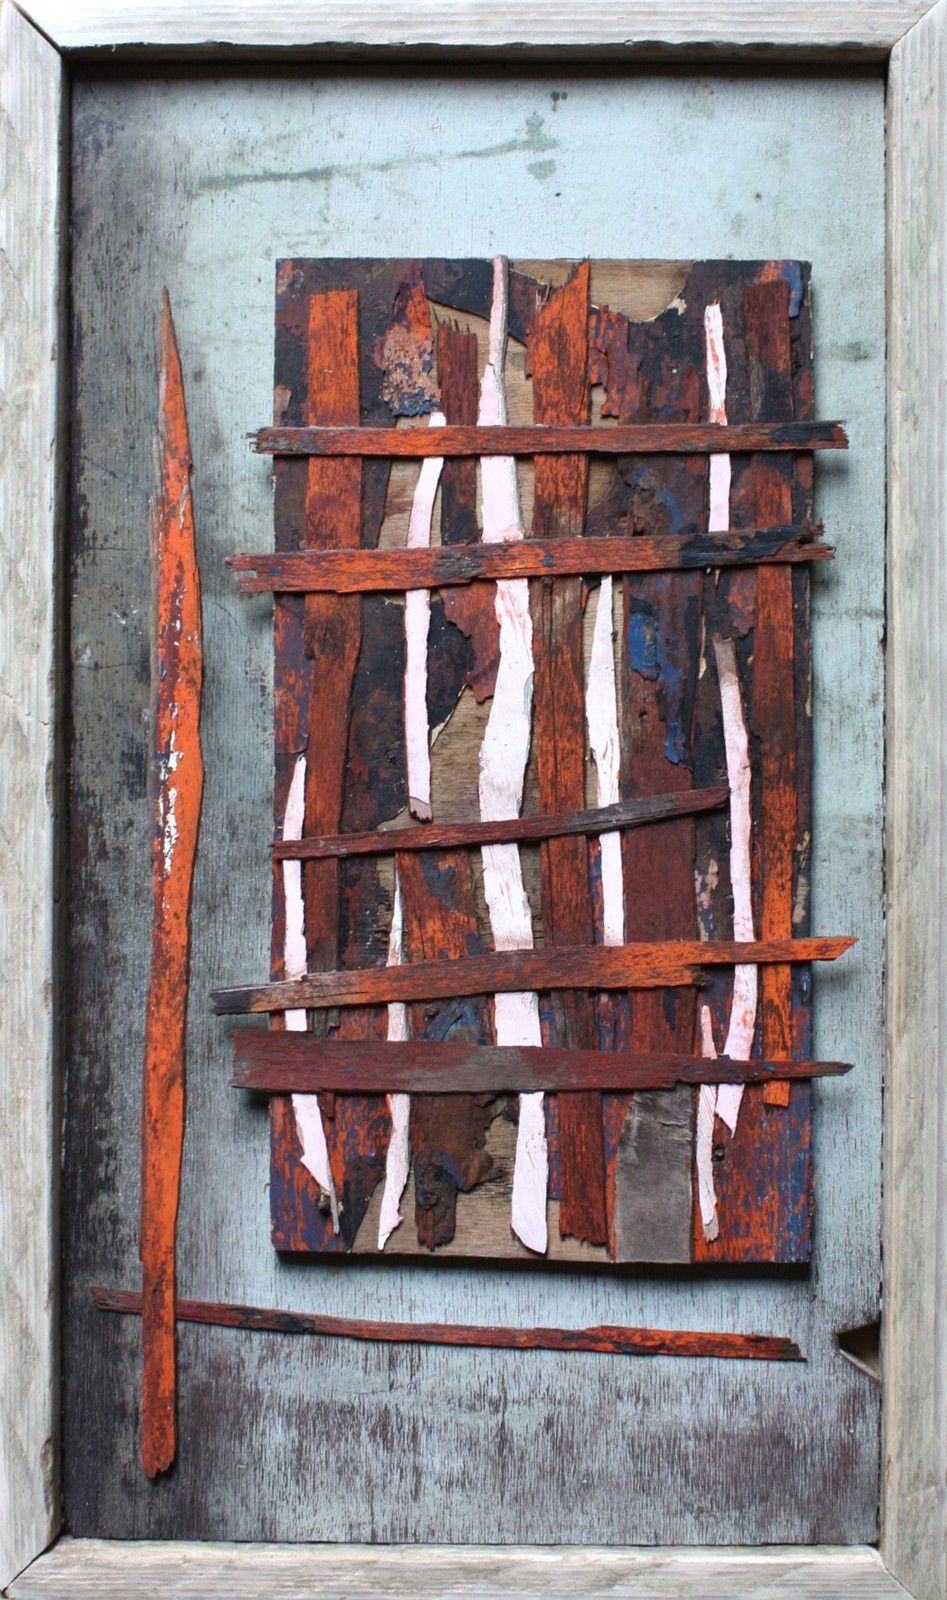 Channel n° 35 - Window 1 - Assemblage mixte © Pascal Levaillant 2016